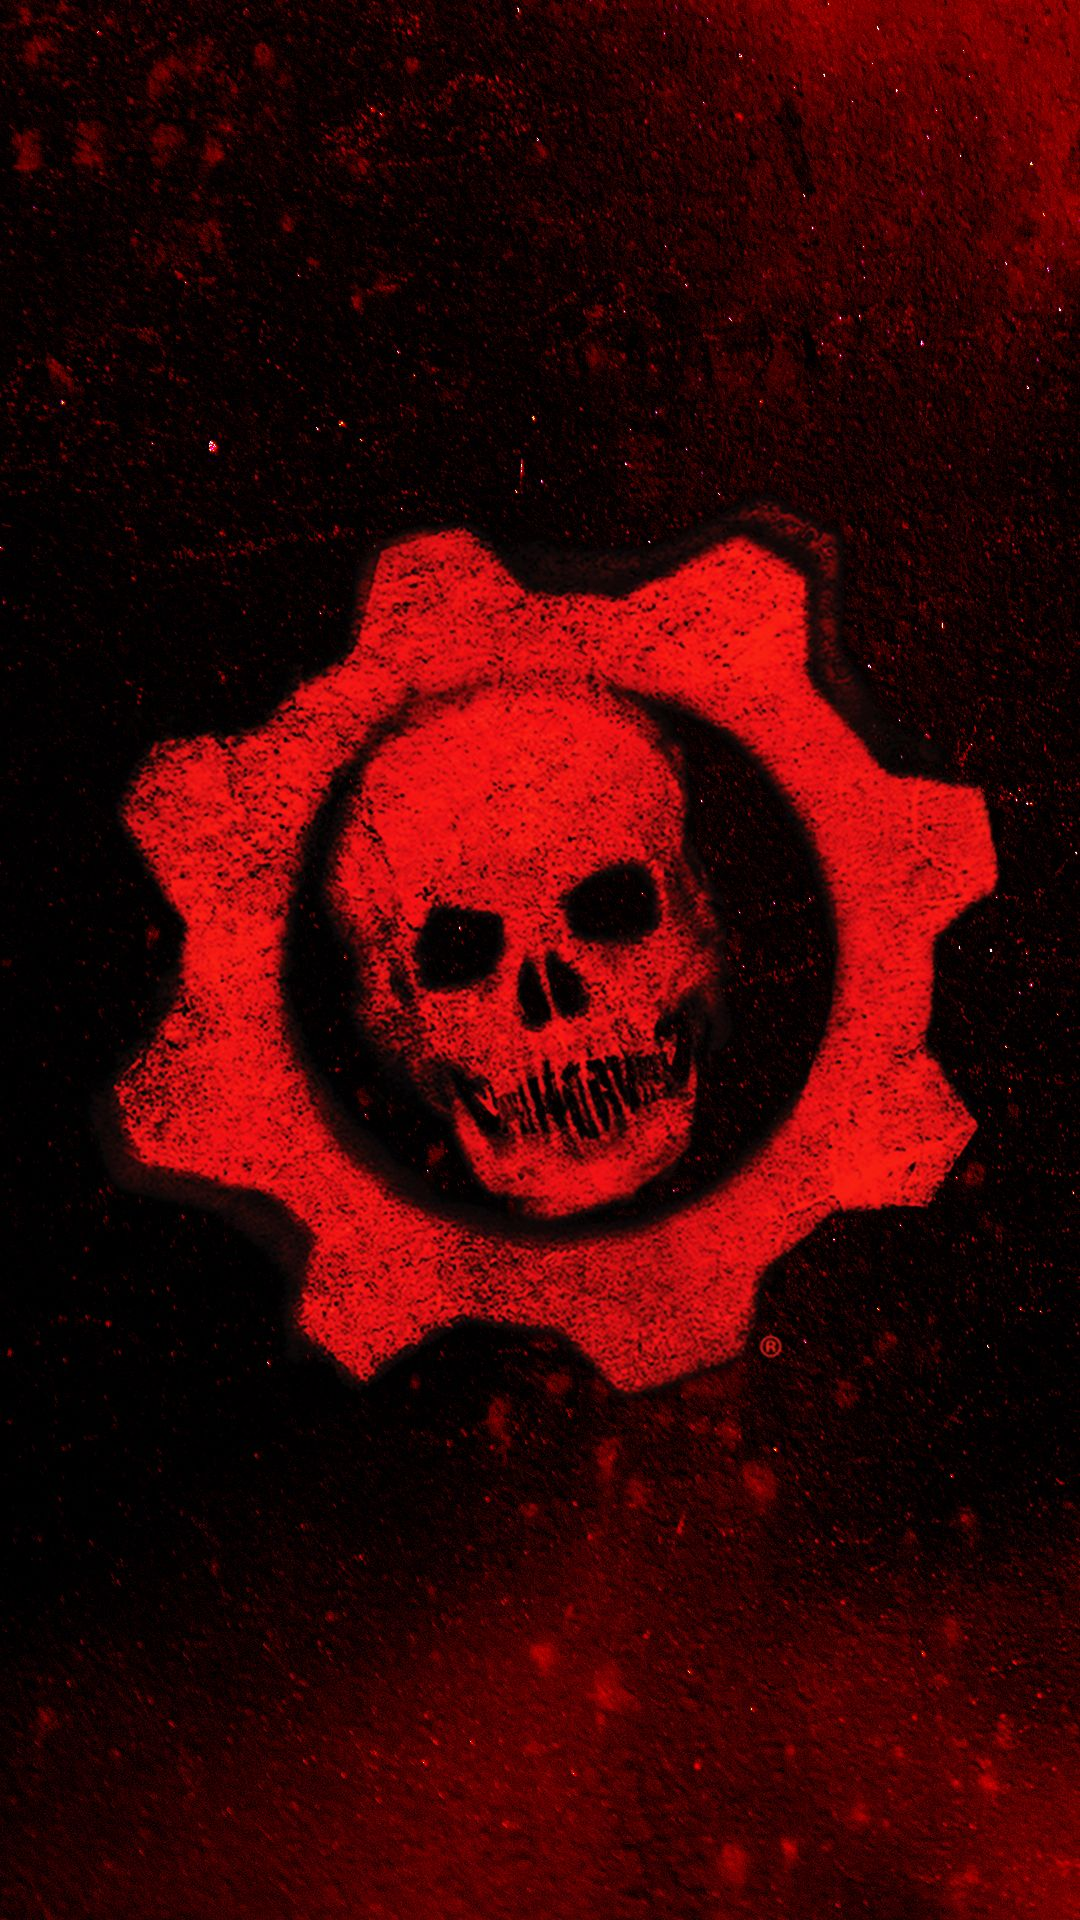 Gears Of War 4 Hd Wallpaper For Your Android Phone Gears Of War